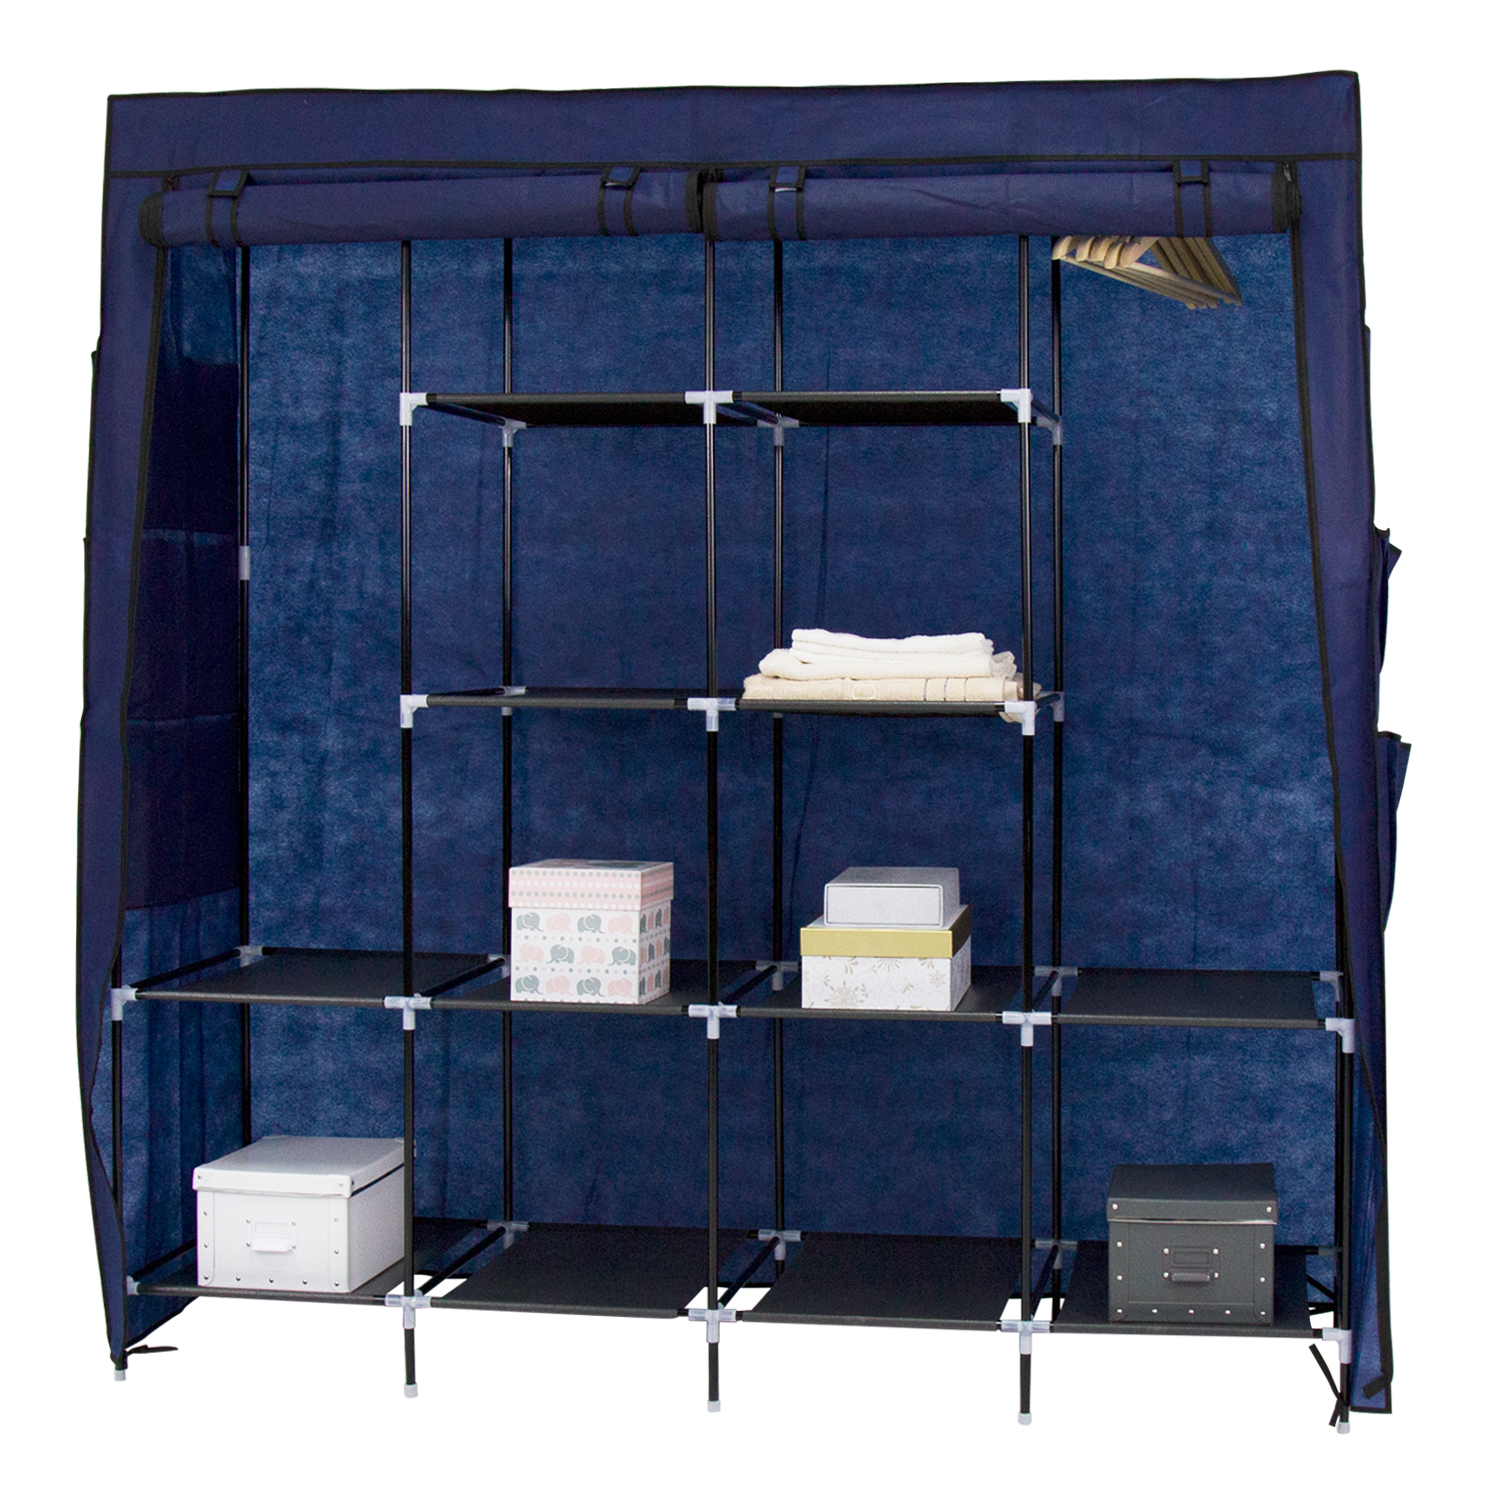 65'' Portable Closet Storage Organizer Wardrobe Clothes Rack with 4 Shelves Blue